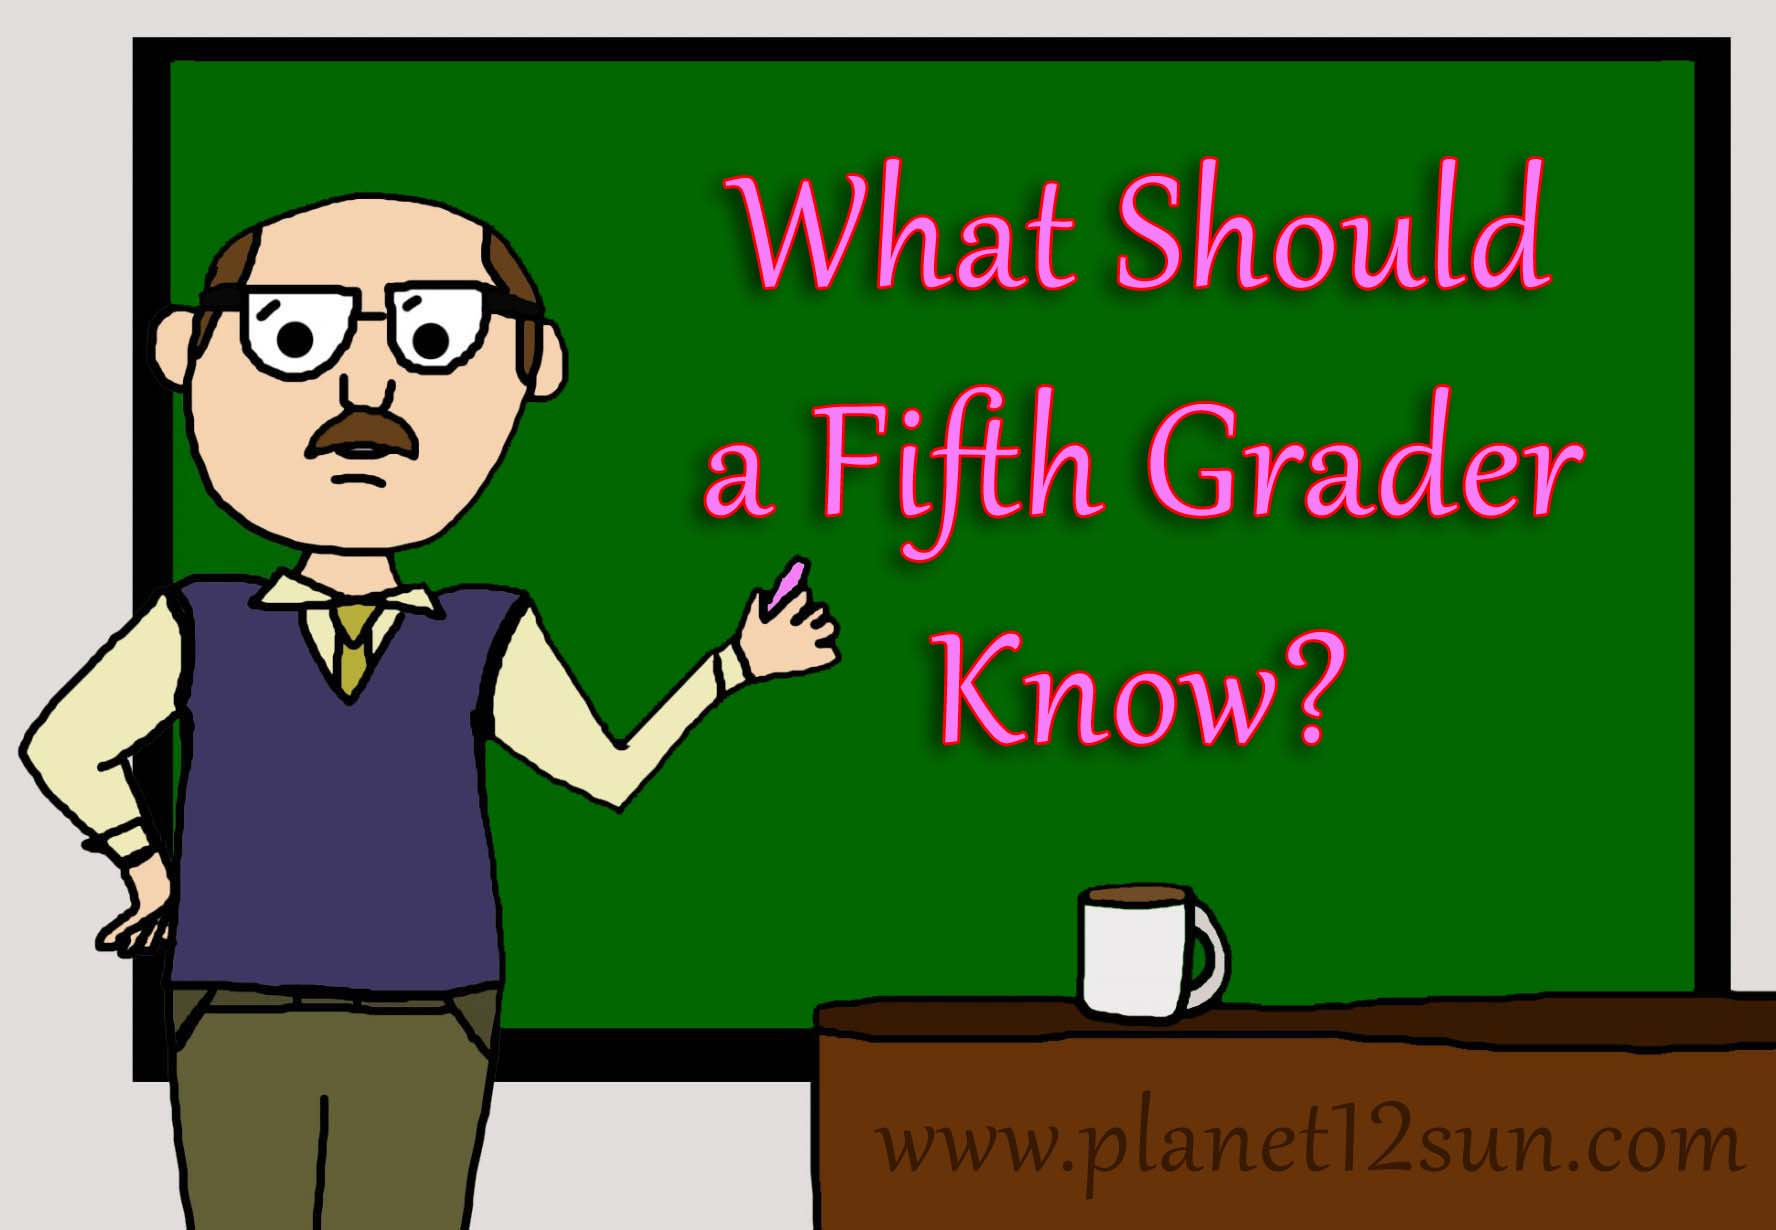 What should a 1st grader know